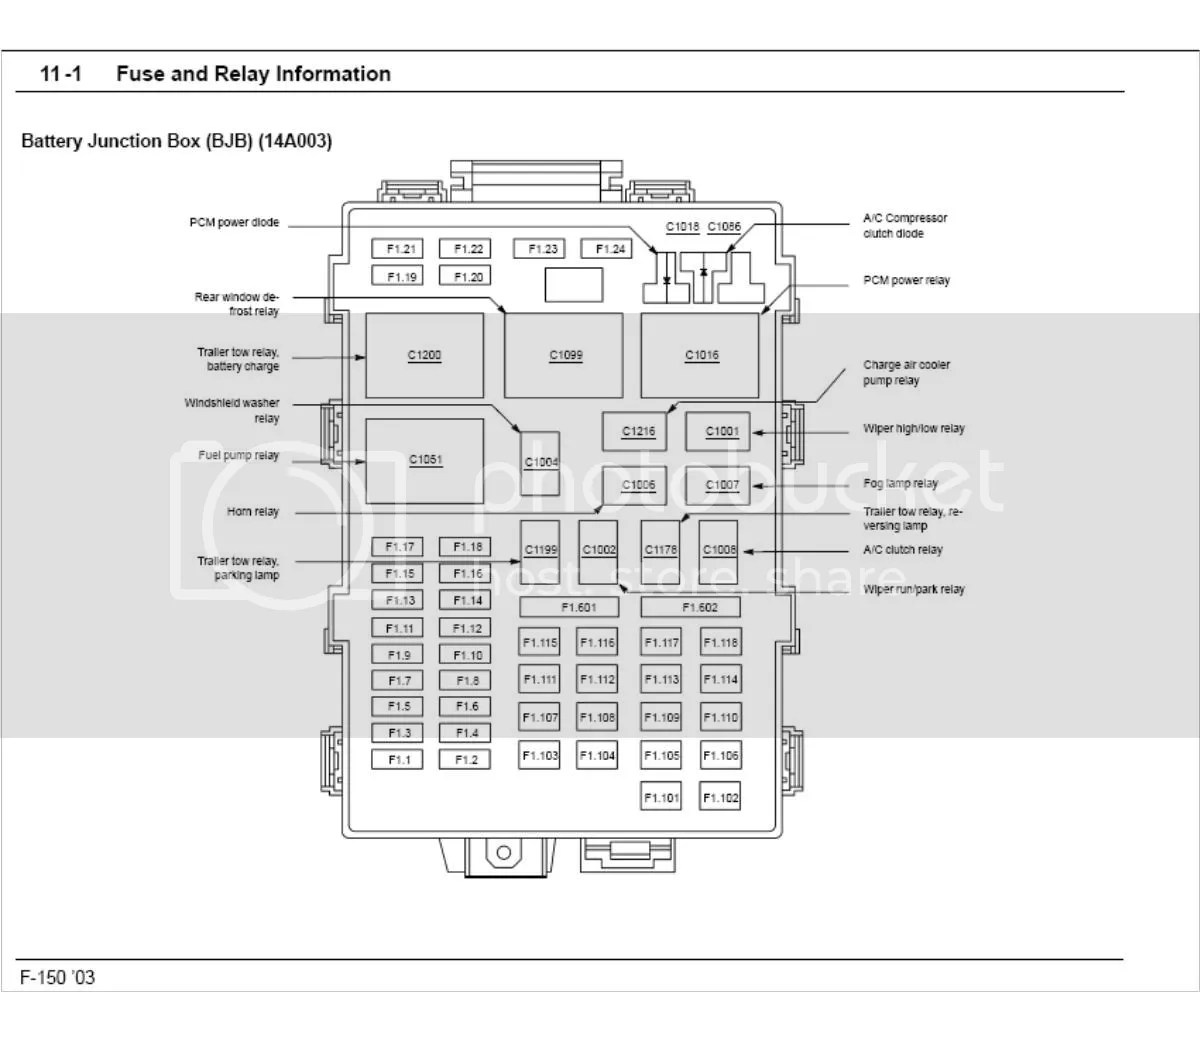 hight resolution of 1996 ford f 150 xl fuse box diagram wiring diagram view00 ford f 150 fuse box